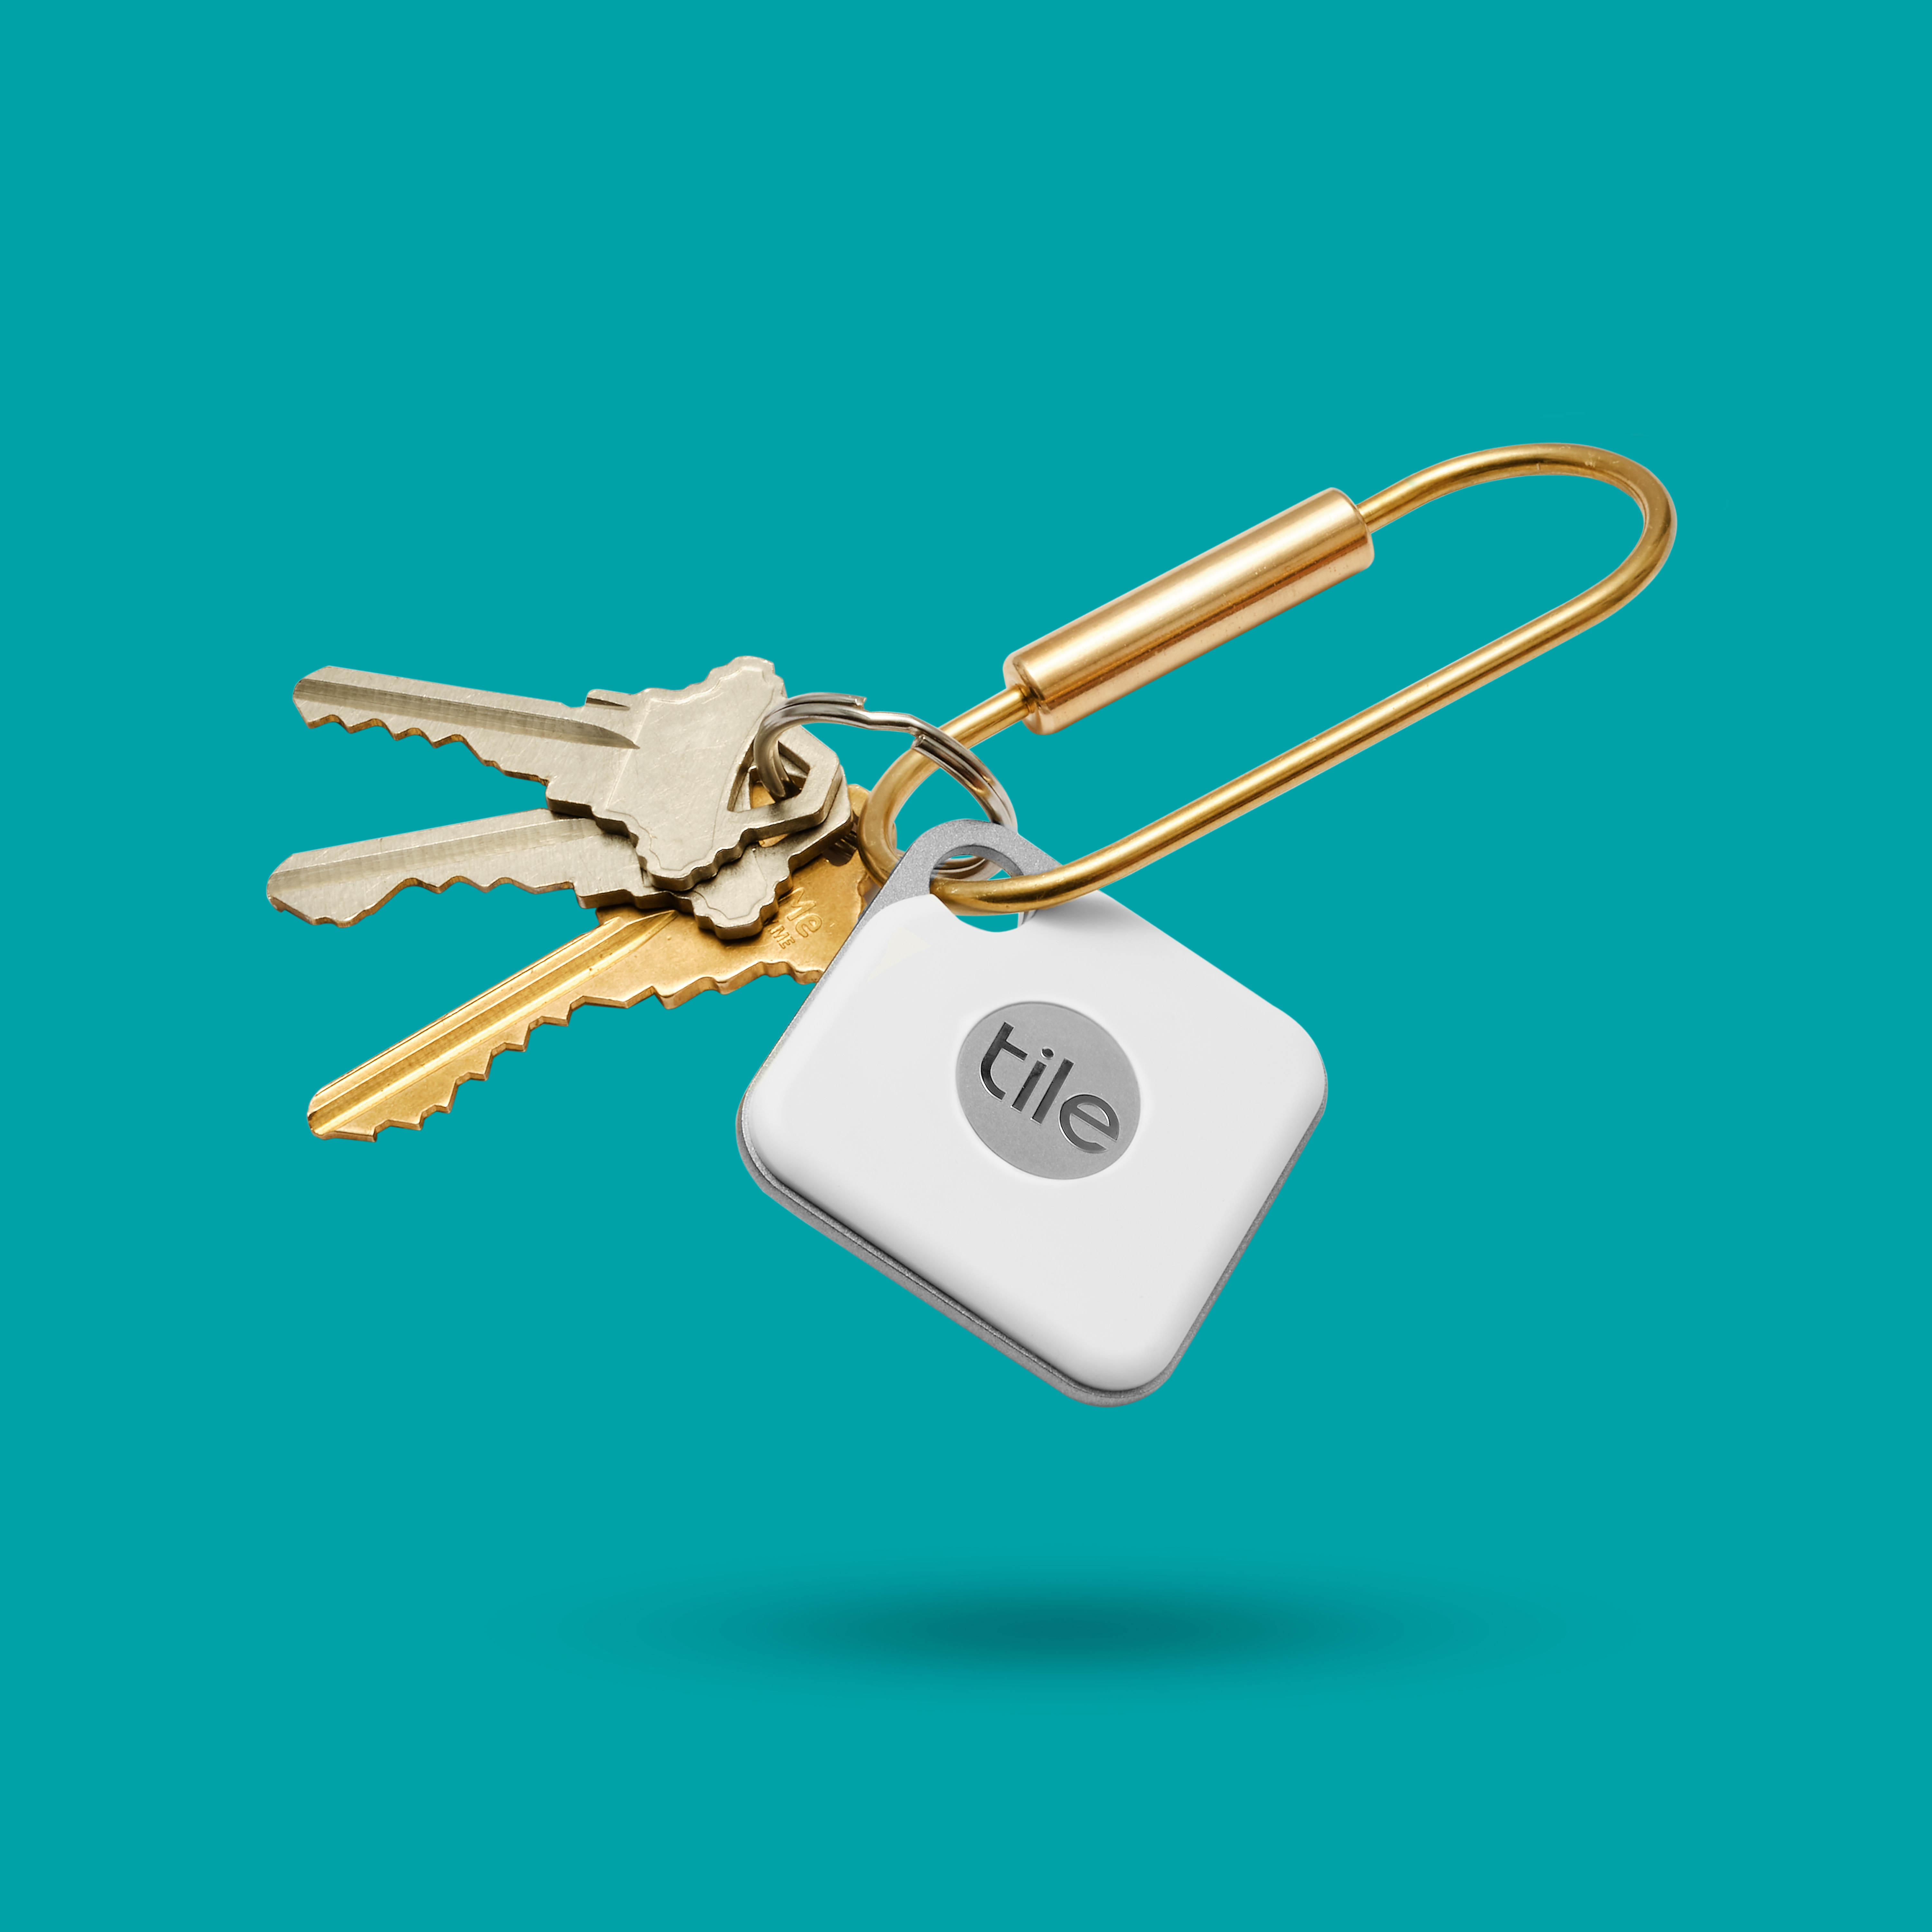 Find your keys anywhere with our Tile Pro Tag!